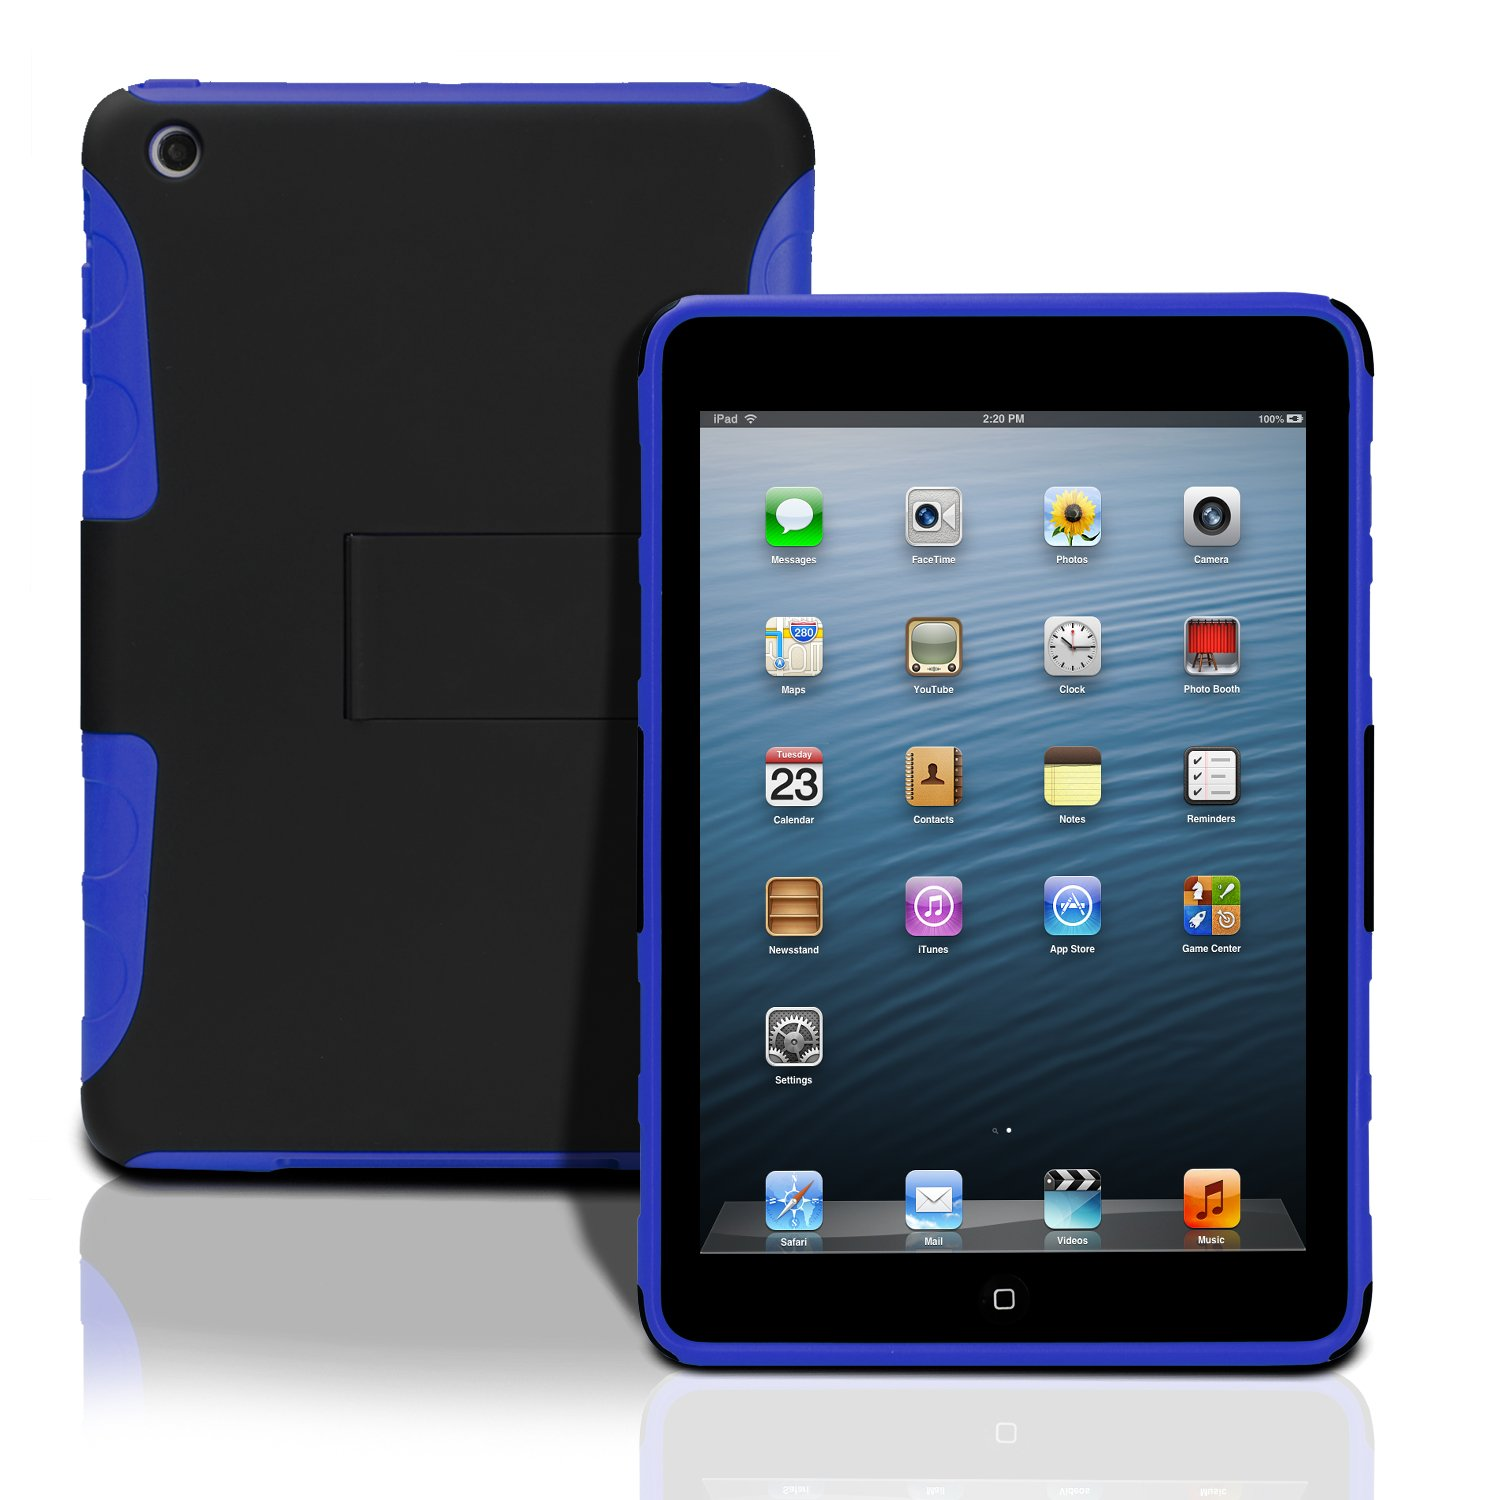 Goat kids iPad mini case Accessorize, protect, and turn your iPad into a classic hardcover! Custom made with premium book cloth and finished with glossy laminate, this hard cover case is a durable and elegant way to show off your favorite designs.